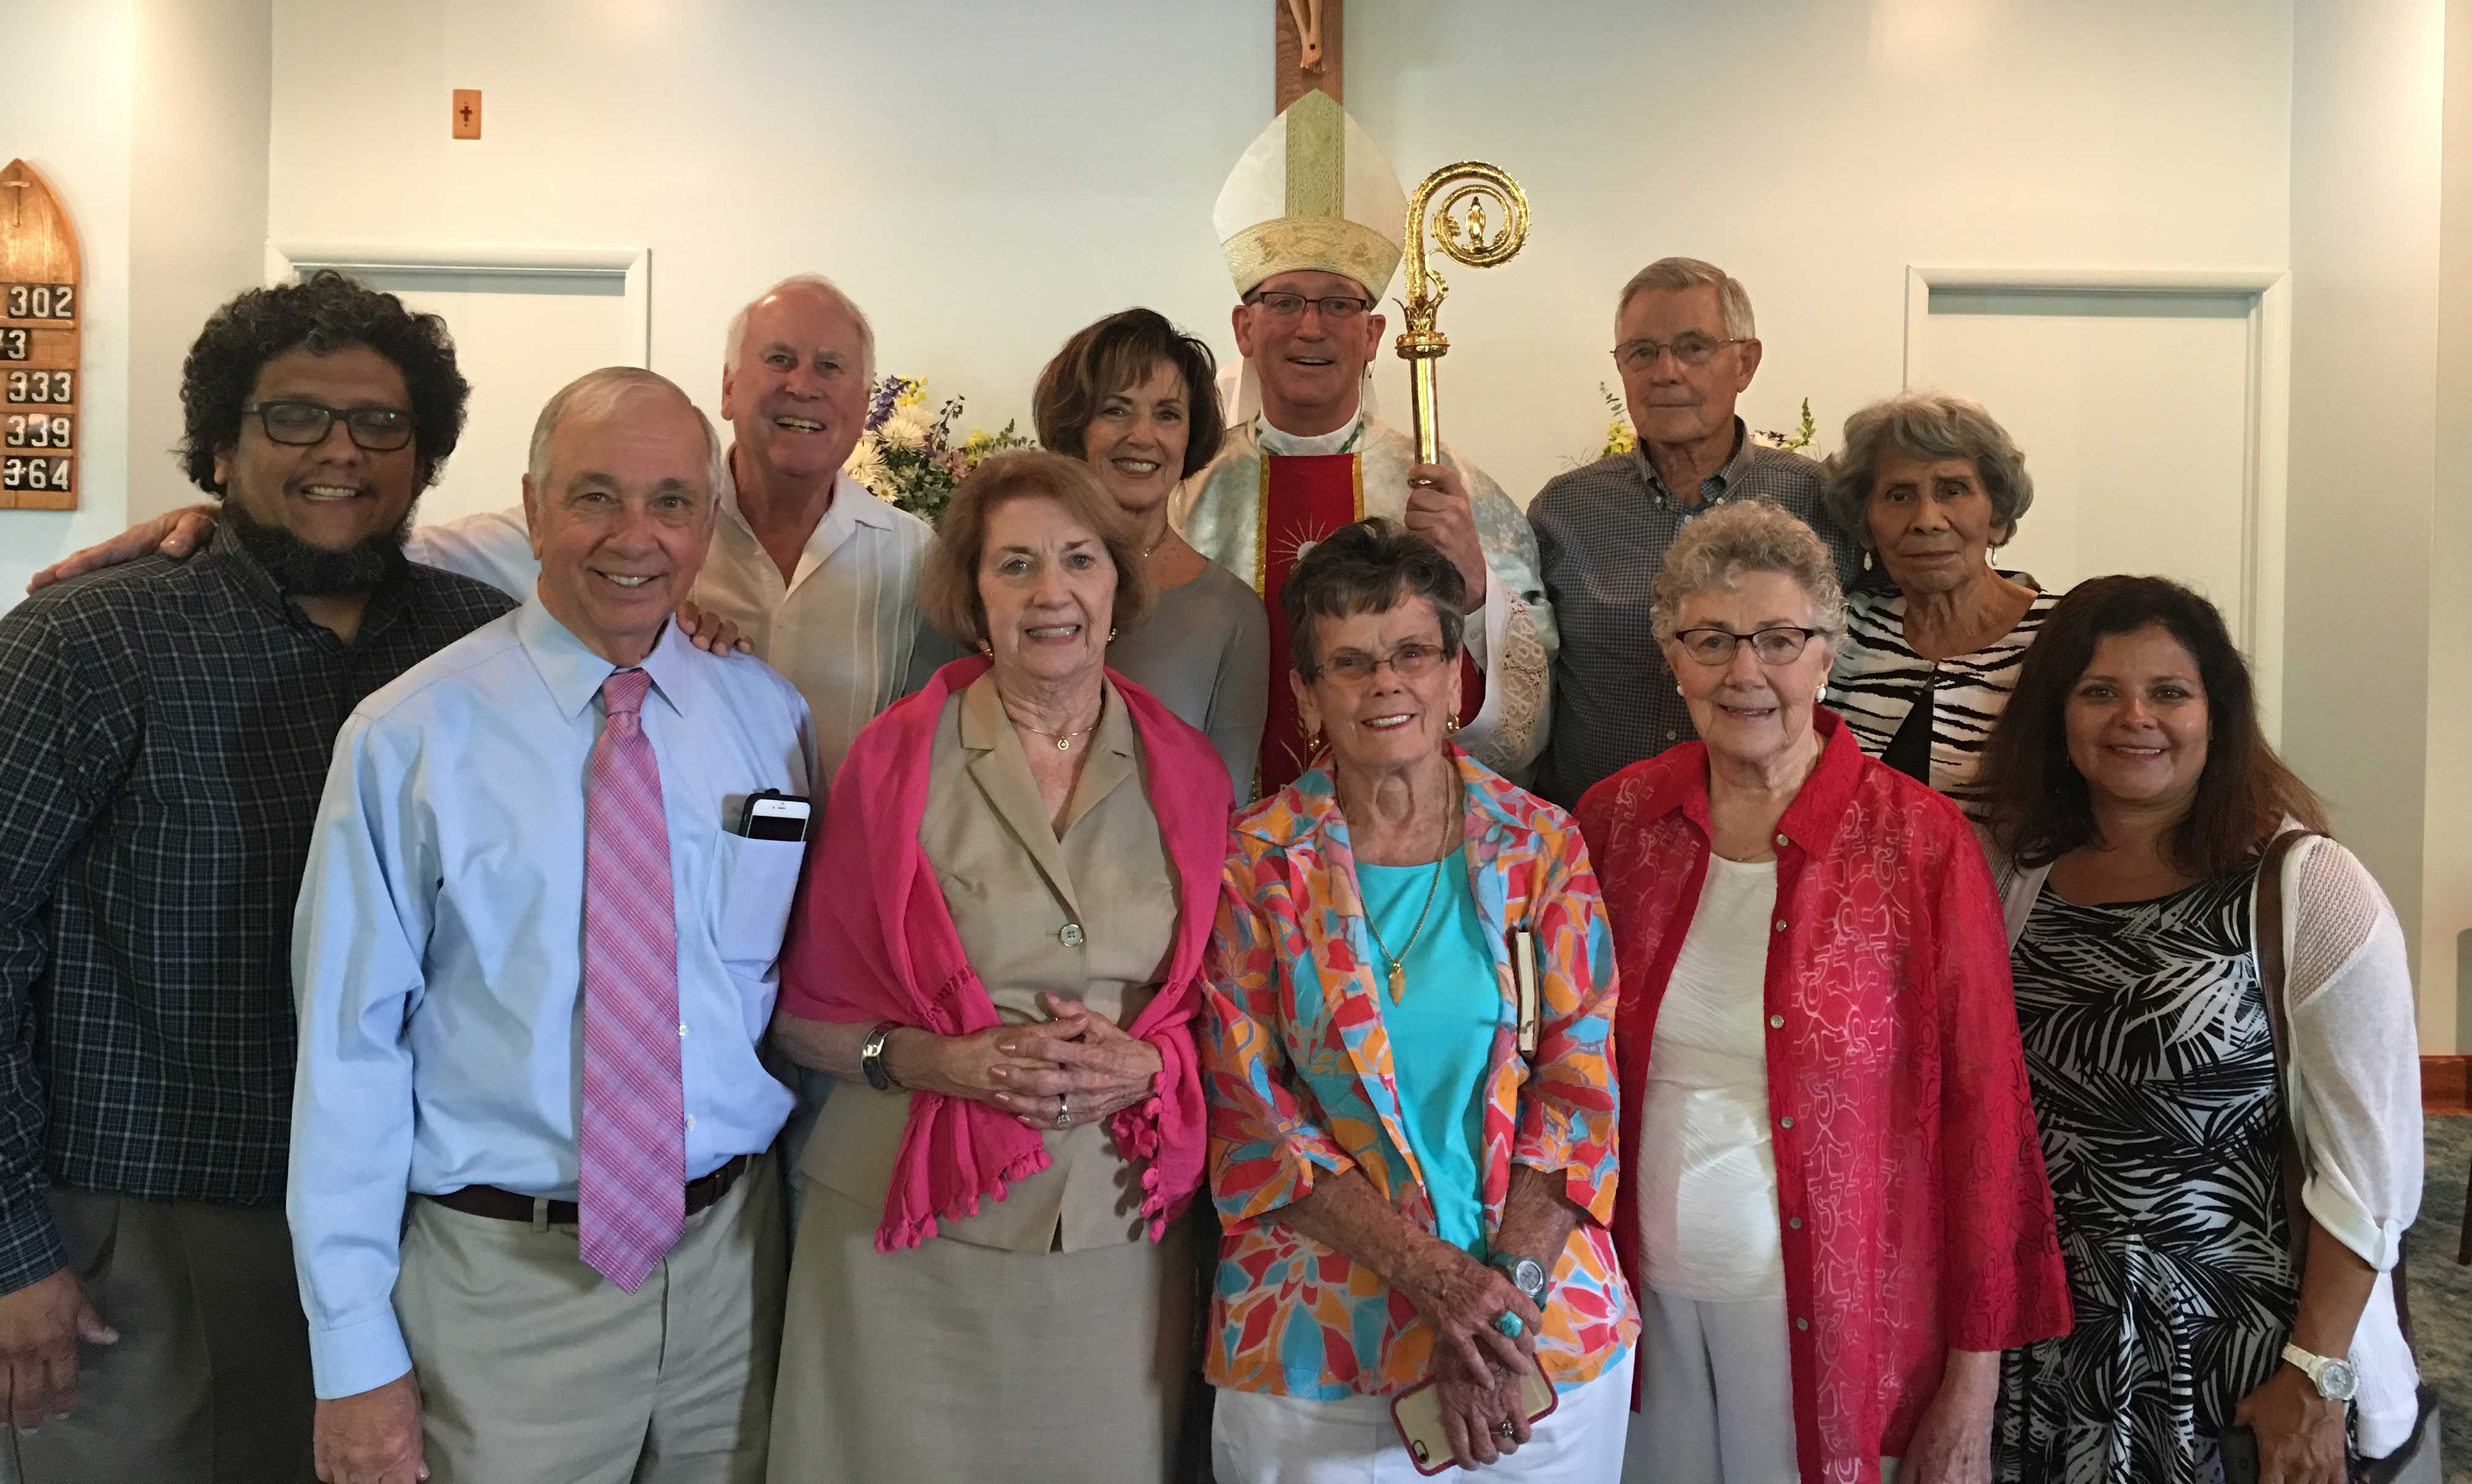 THE OWEN & HELEN BEST FAMILY—Owen and Helen Best, deceased, donated the land for the current Sacred Heart Church. Pictured is the young generation of the Best family onhand at the June 18 liturgy: (front) David Best, Leo Saenger, Pat Best Saenger, Treasa Weaver, Mary Best, Christina Best; (back row) Wayne Unze, Margeret Best Unze, Bp. Edward Rice, Leon Best, and Dora Best. (The Mirror)